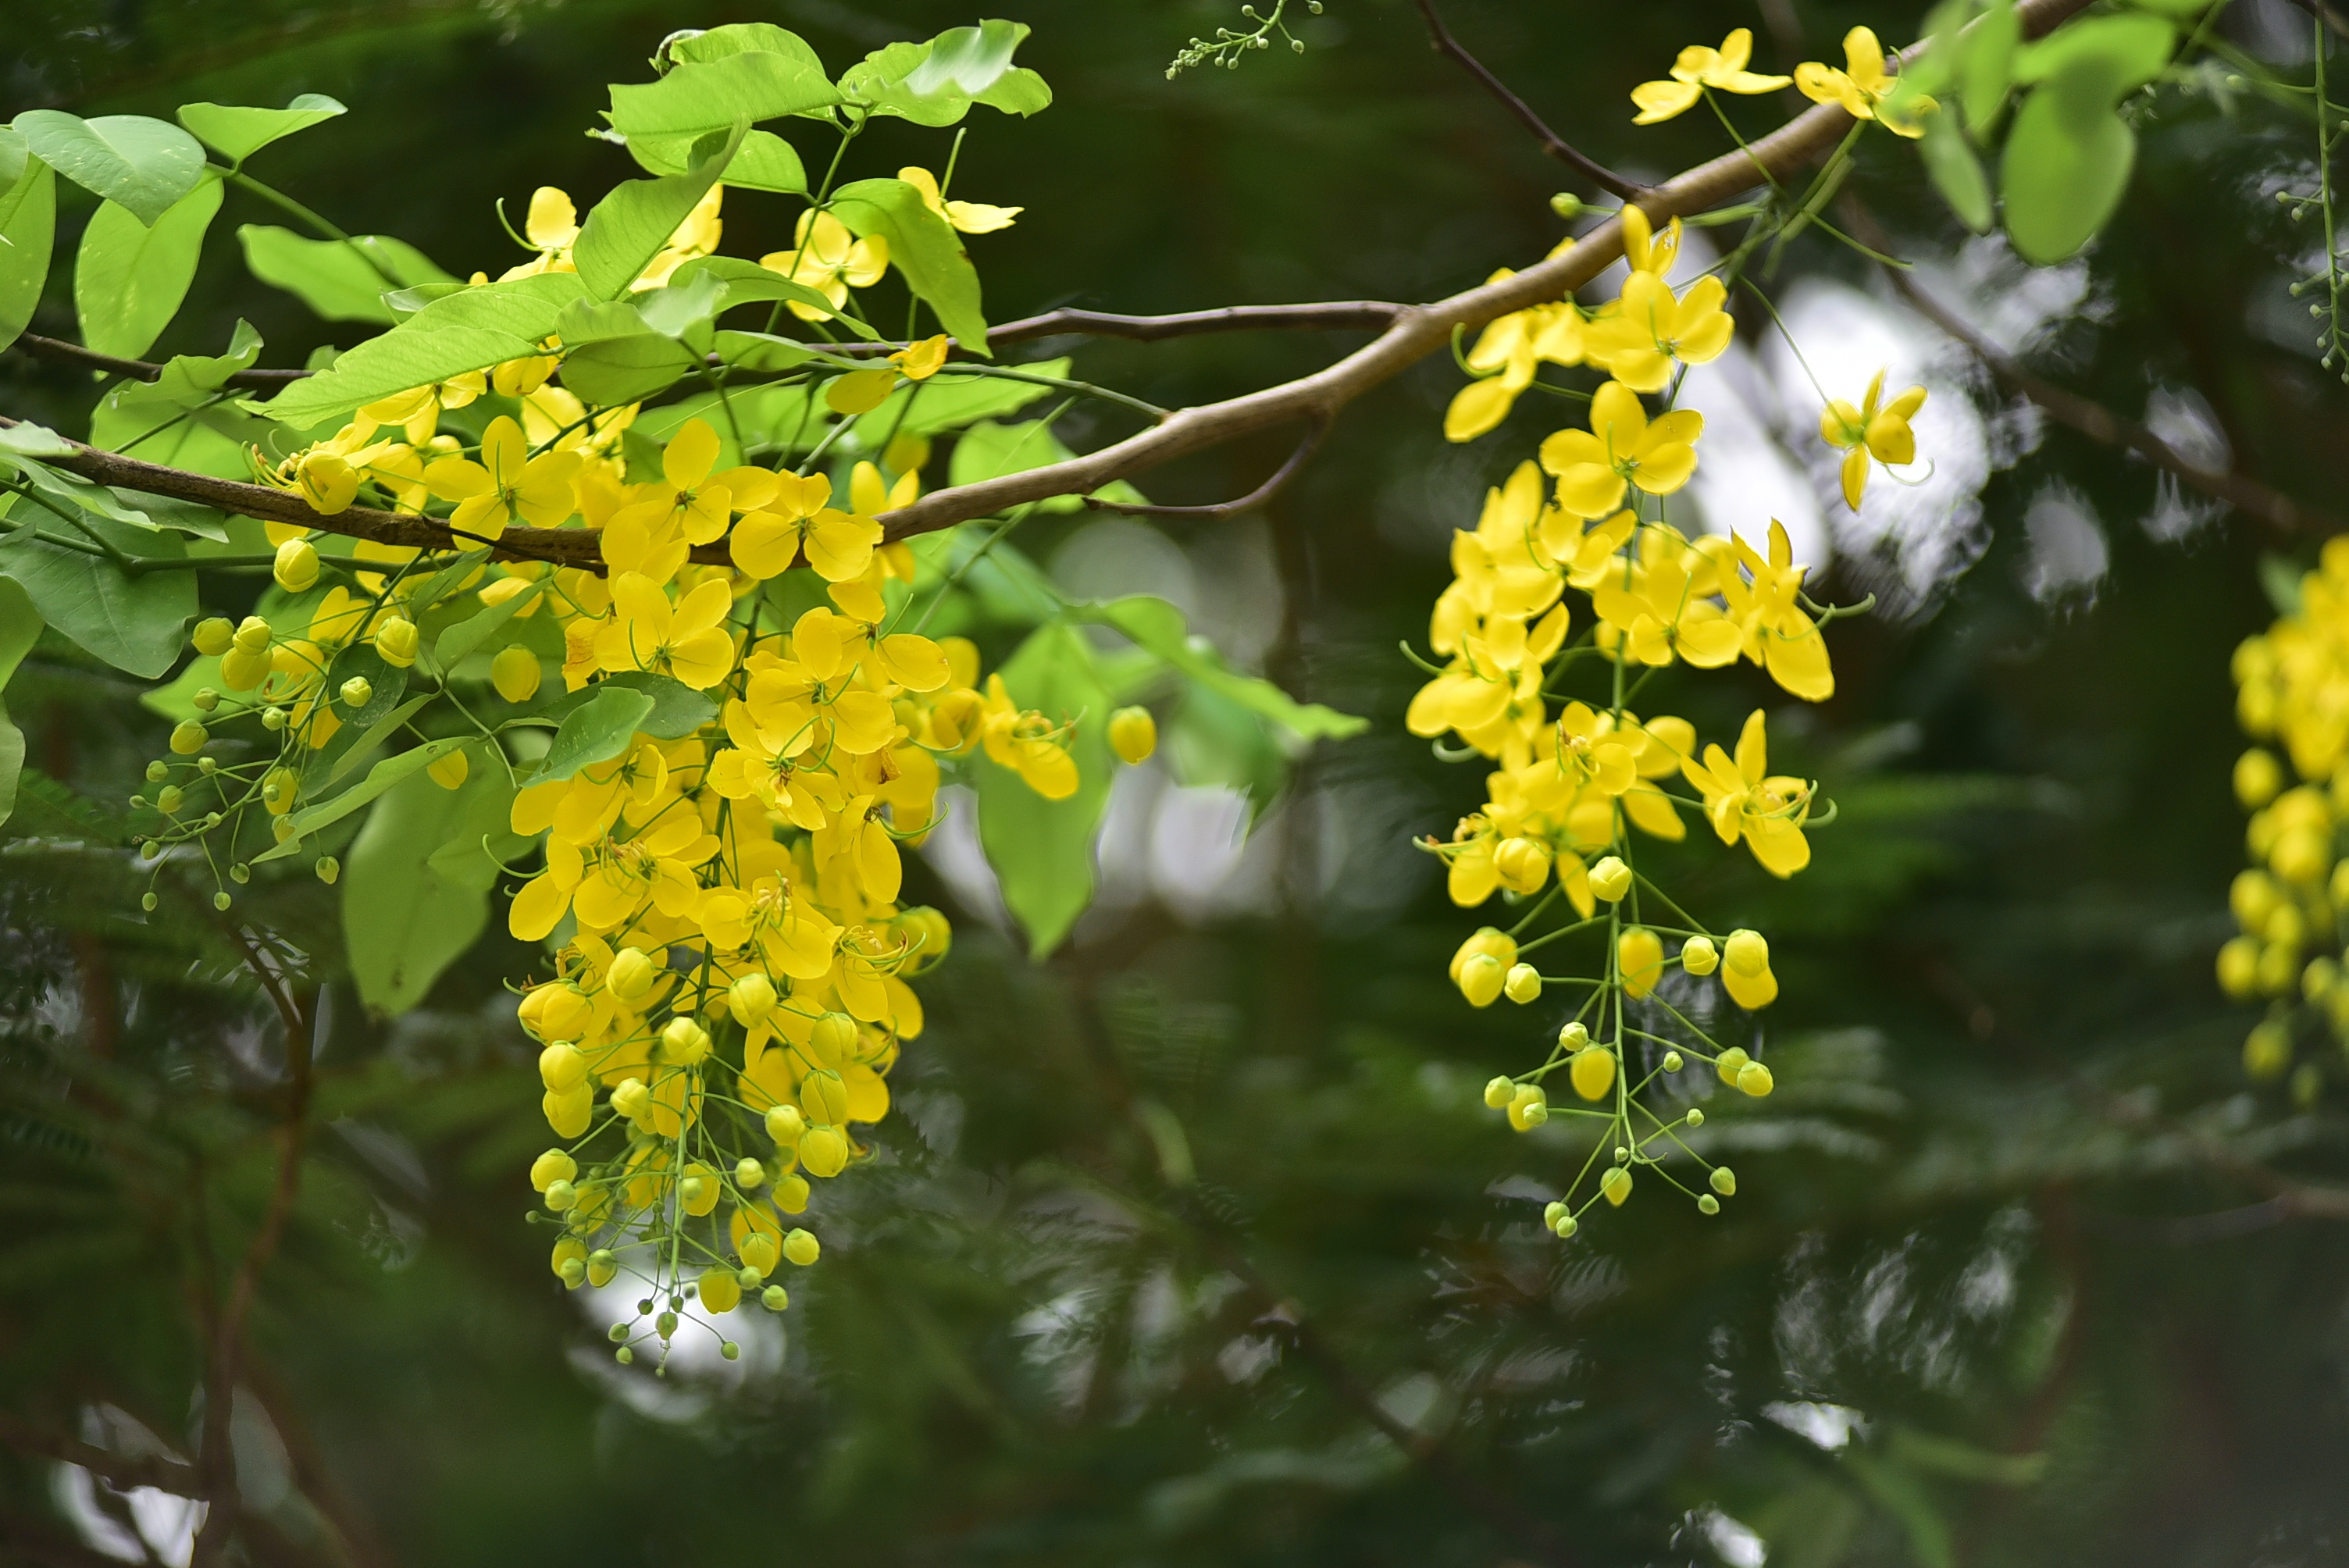 Bunches of flowers hanging down